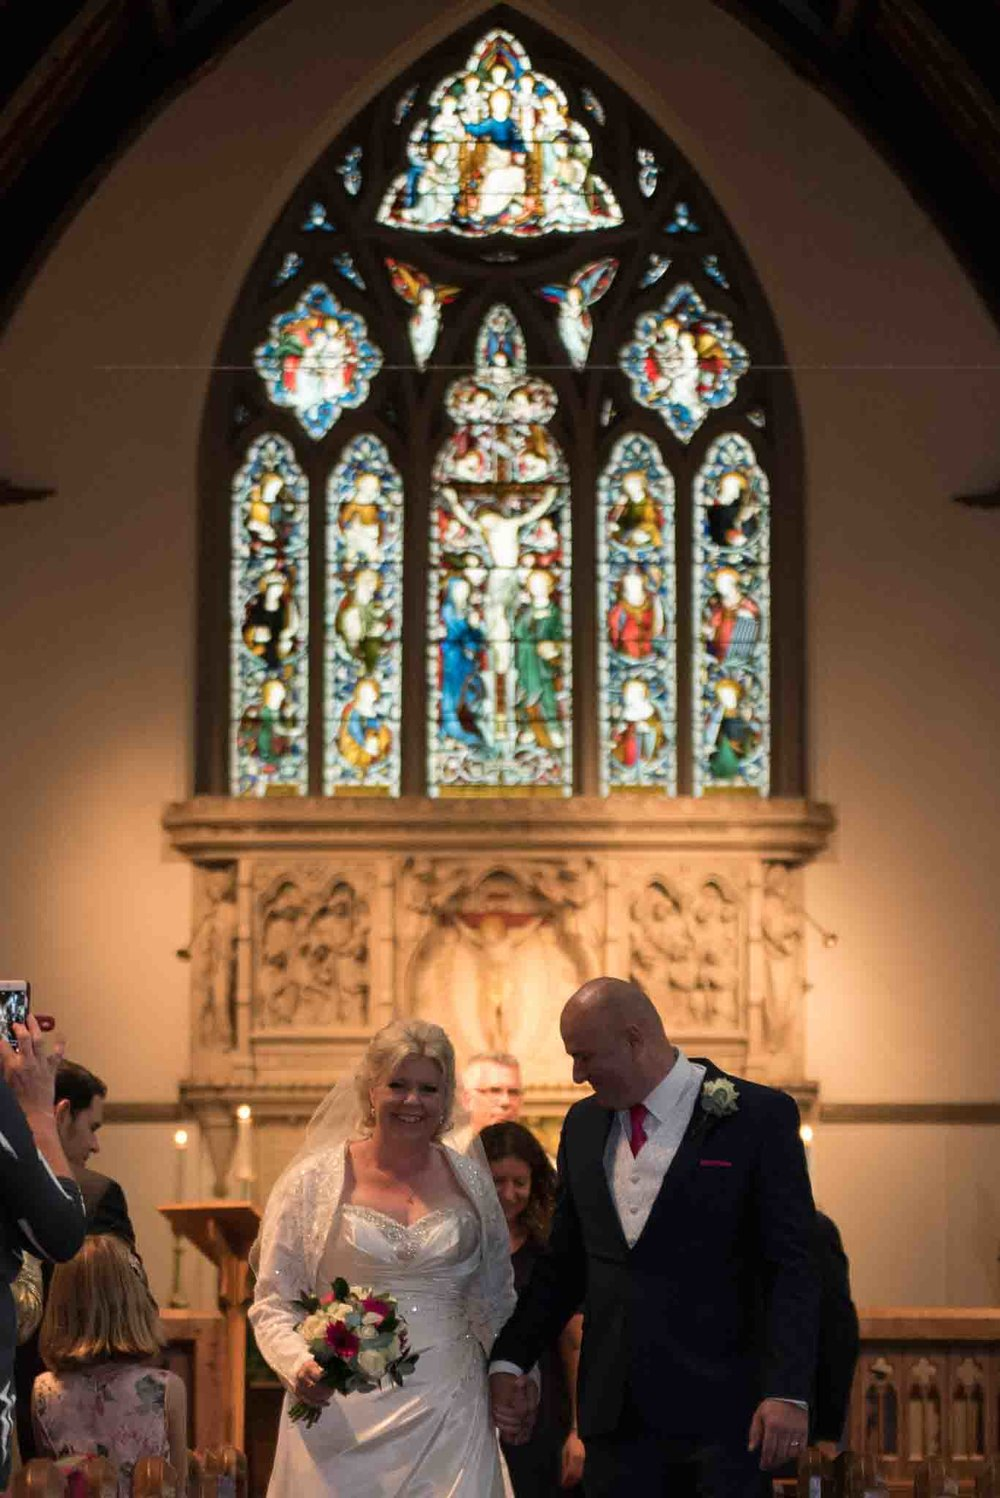 St Mary & All Saints Beaconsfield, St Mary's Beaconsfield, Beaconsfield wedding photographer, Beaconsfield wedding, Buckinghamshire wedding, Reportage wedding photography